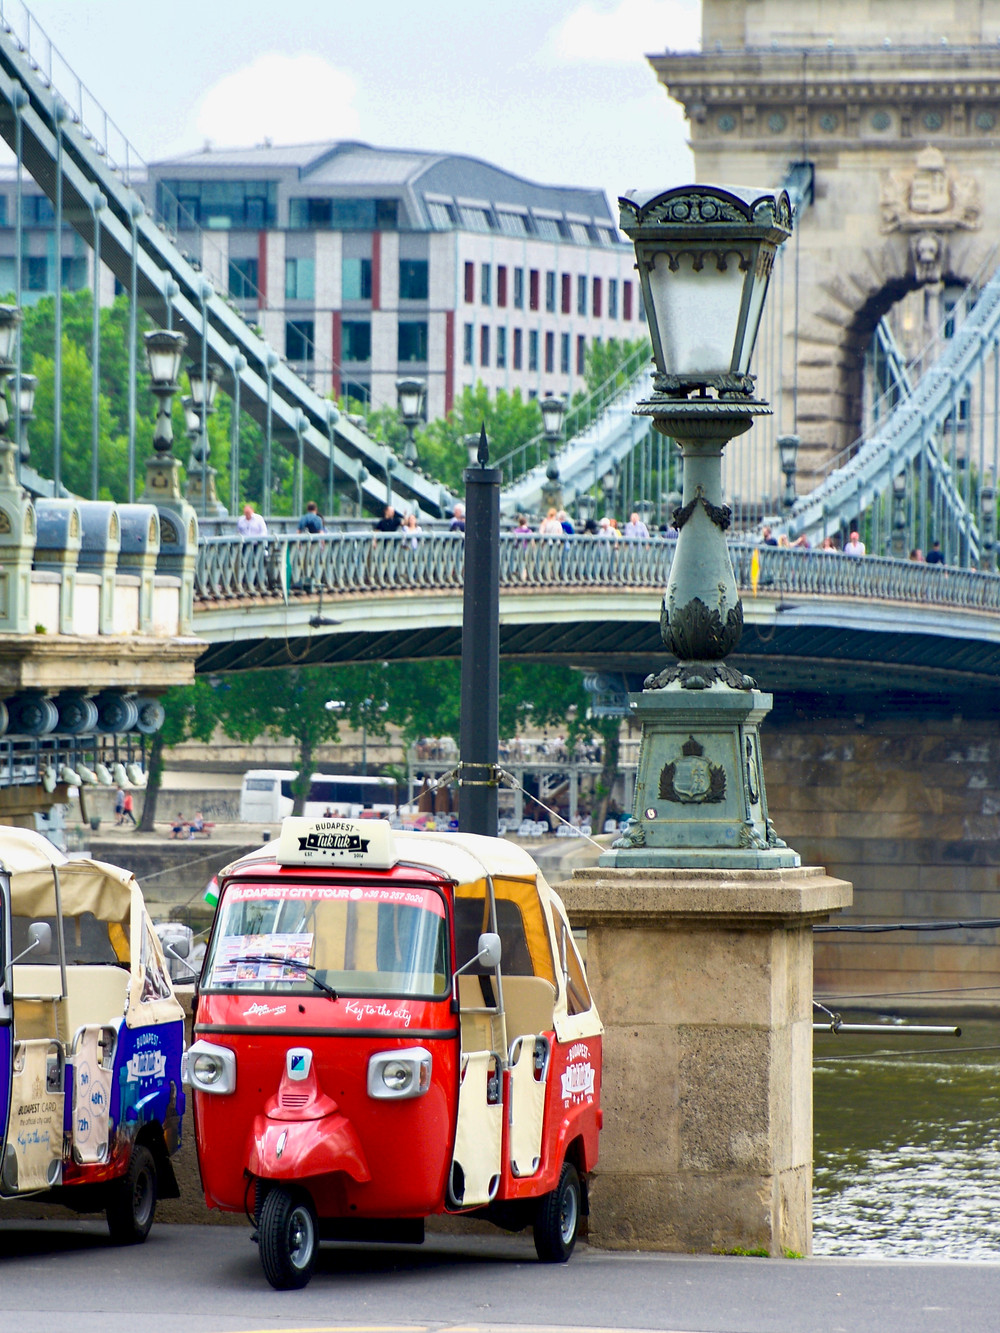 A bright red tuk tuk parked in front of a lampost by the Széchenyi Chain Bridge in Budapest, Hungary